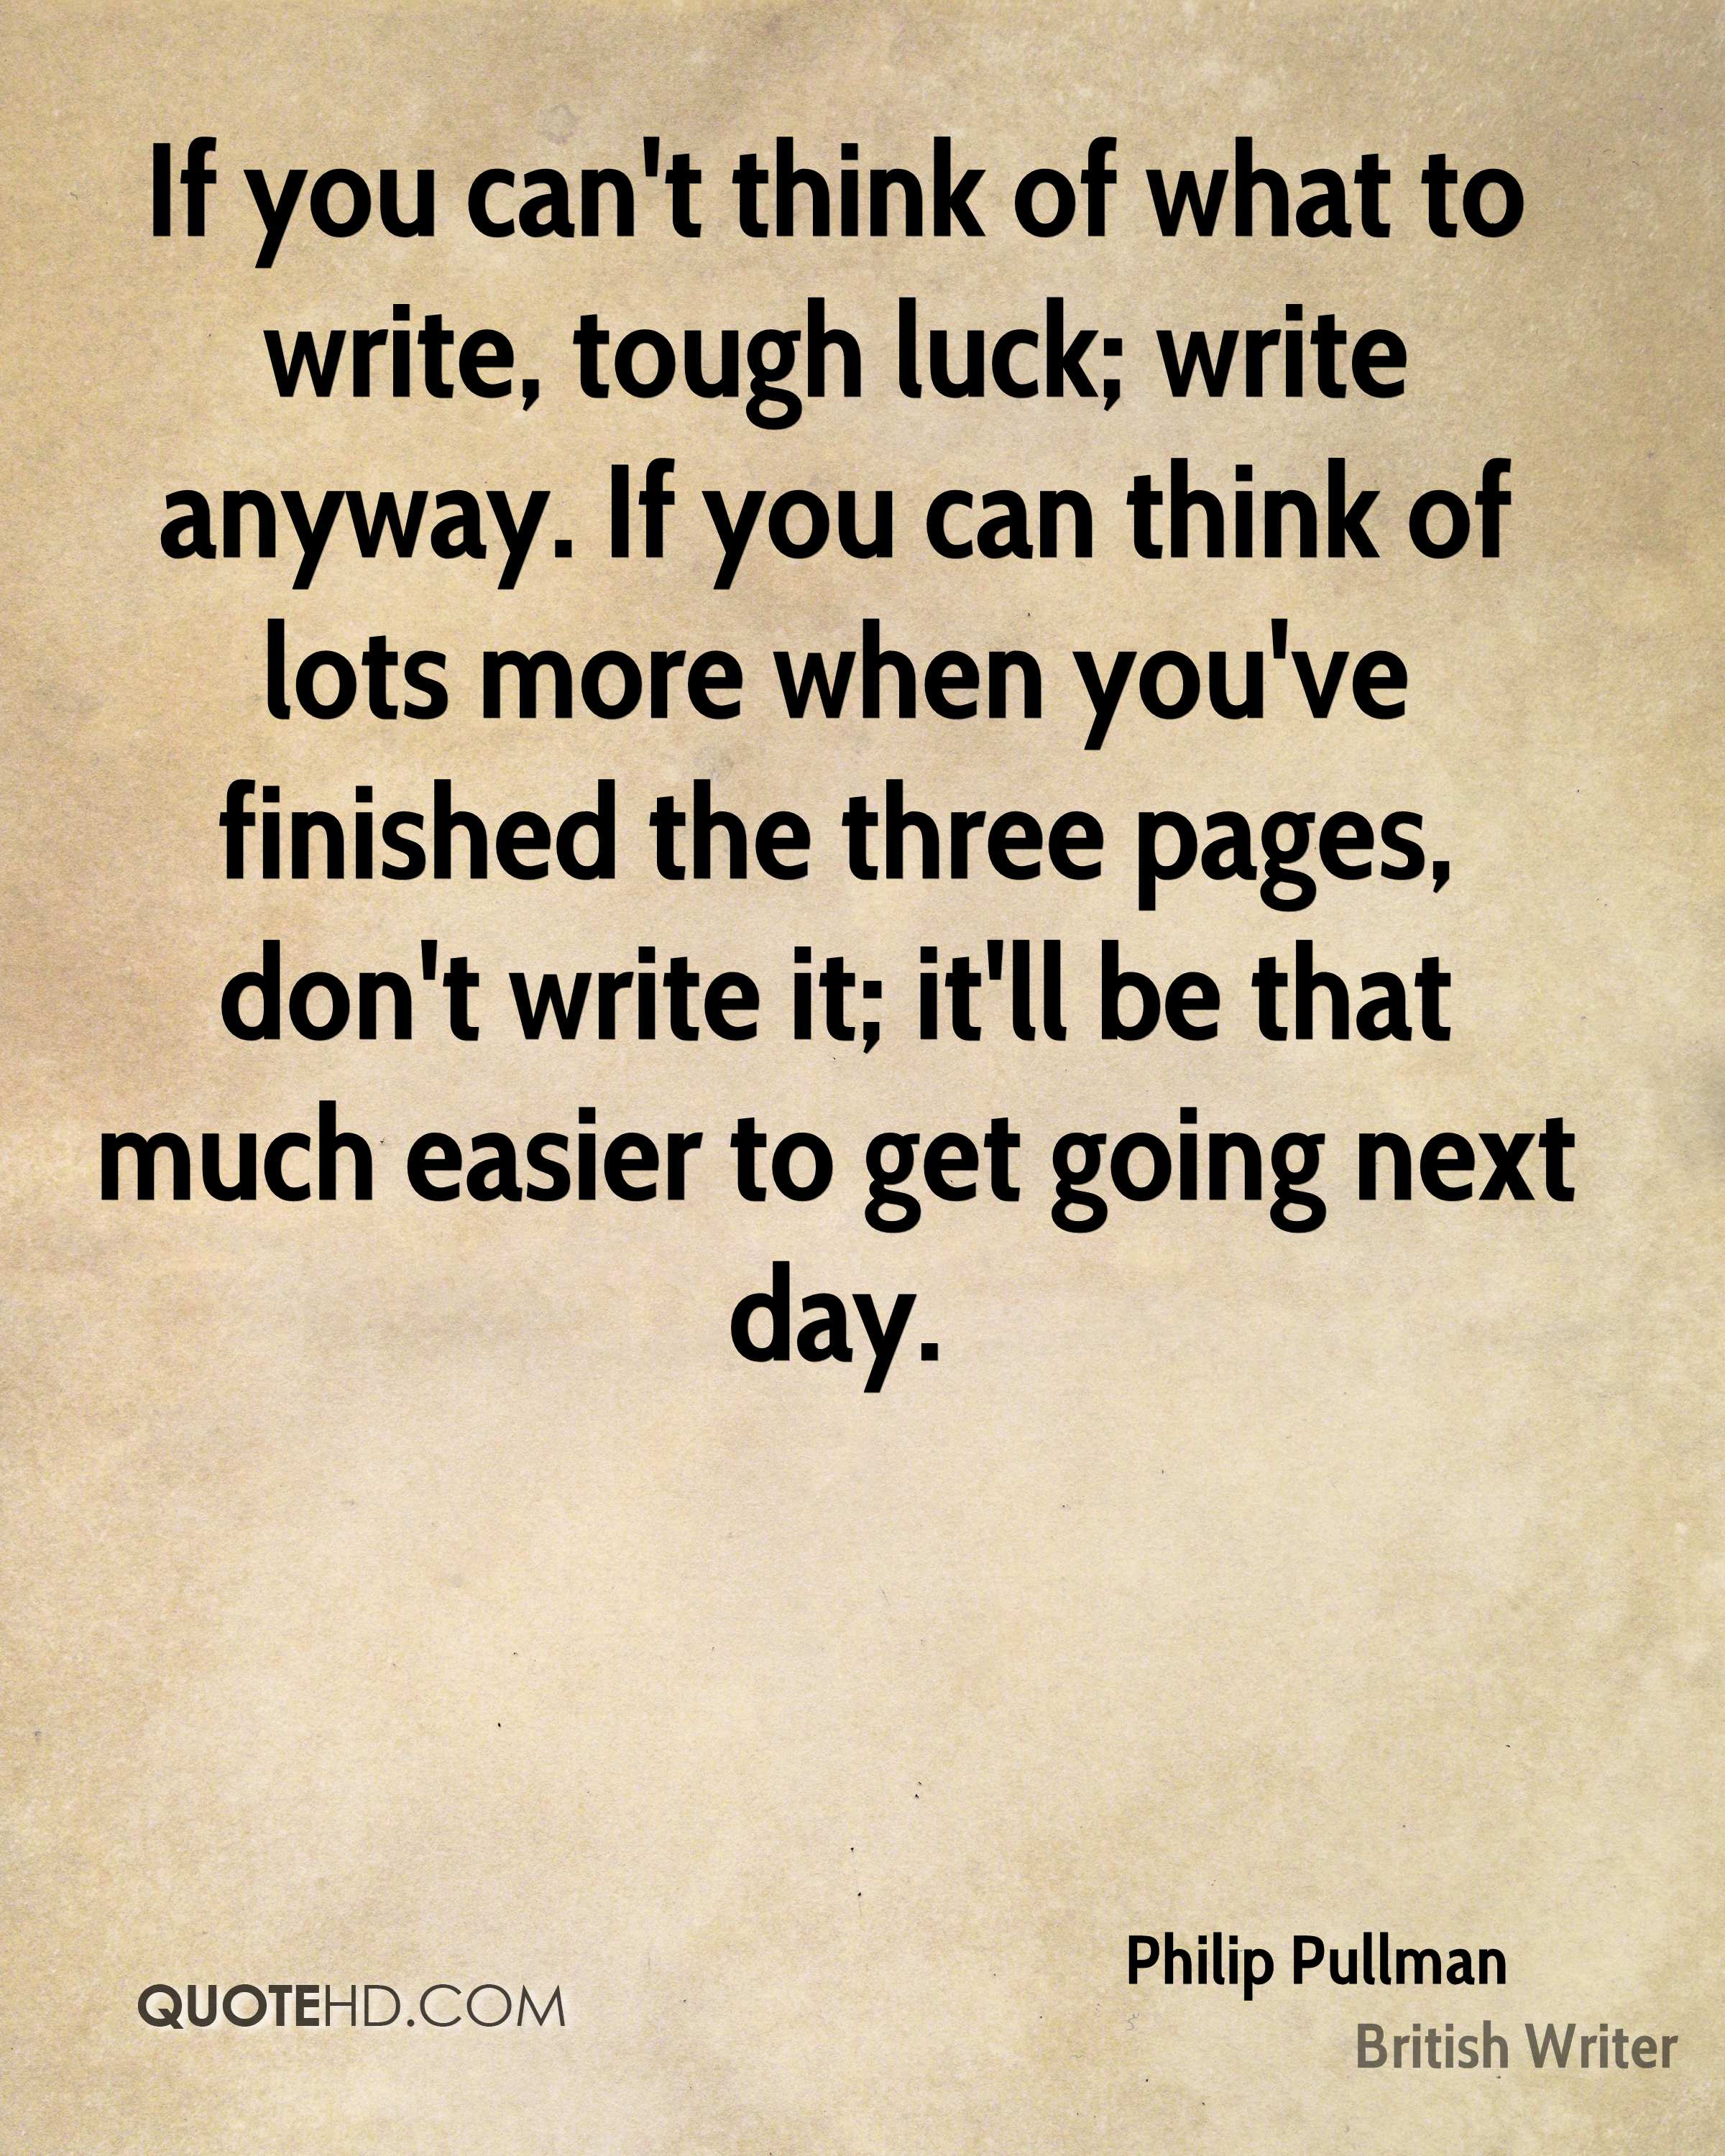 If You Can T Think Of What To Write Tough Luck Anyway